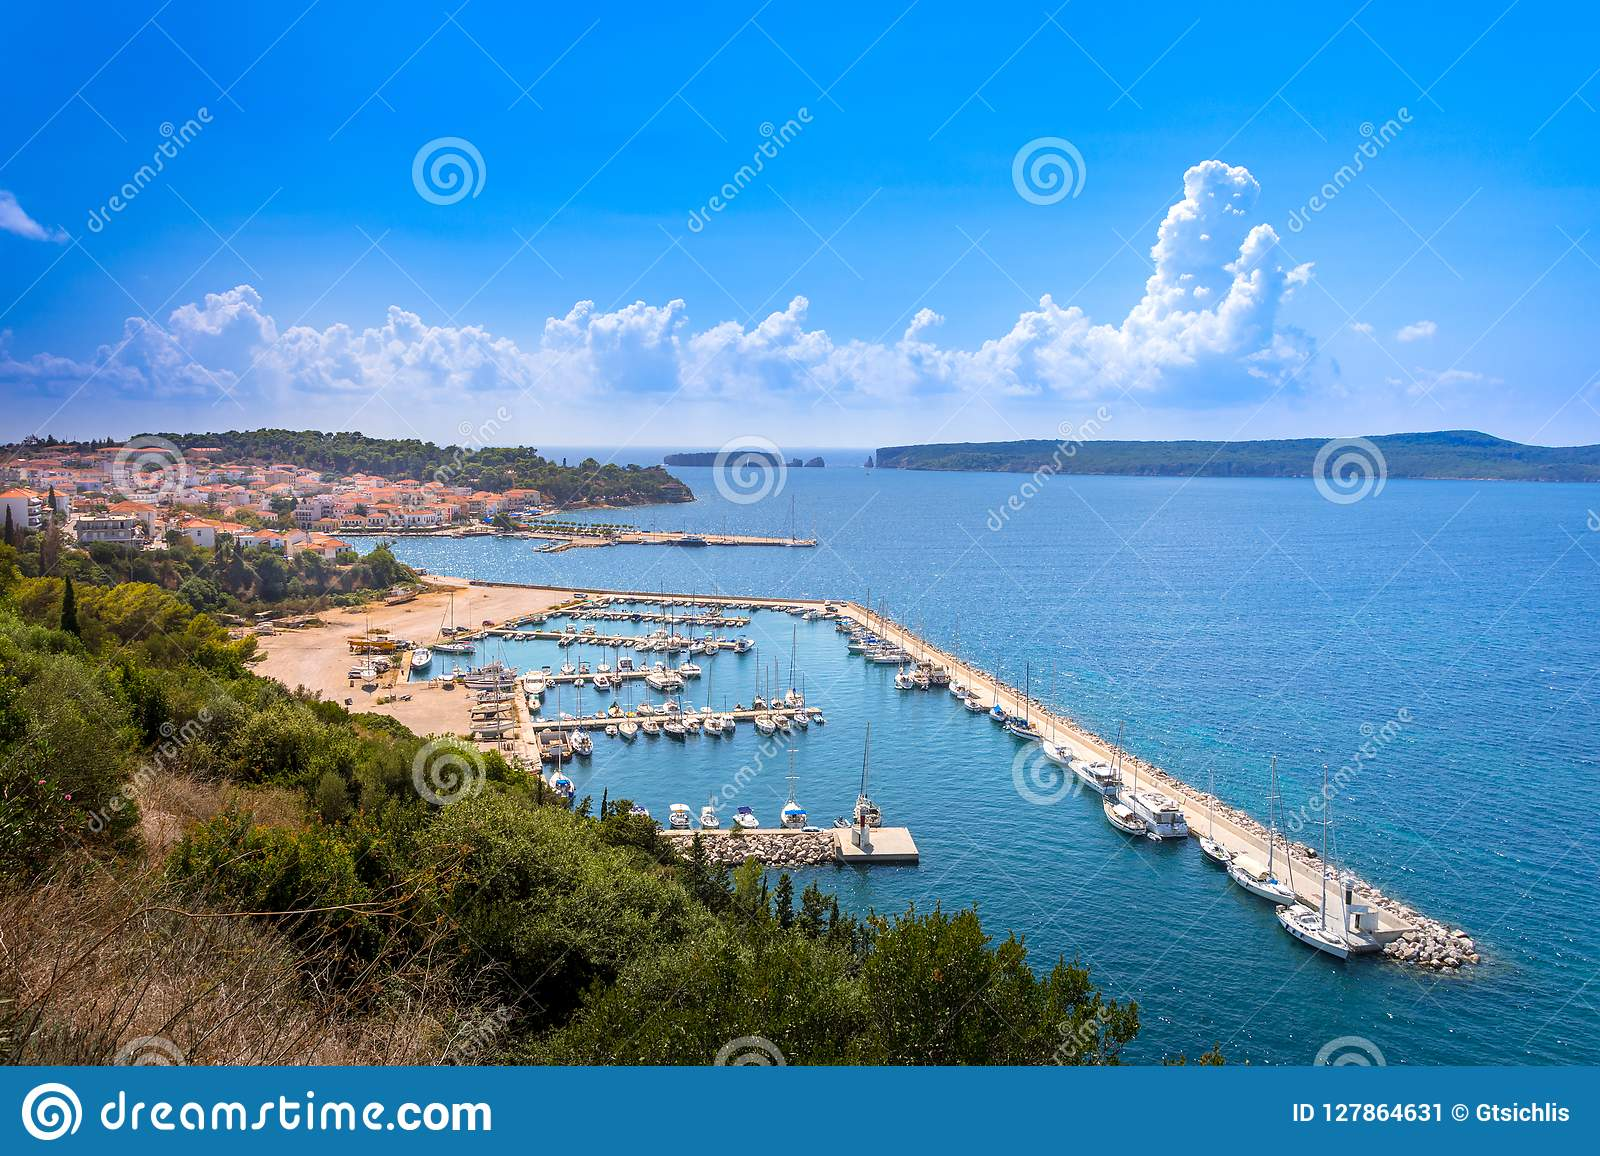 View of the picturesque coastal town of Pylos, Peloponnese.